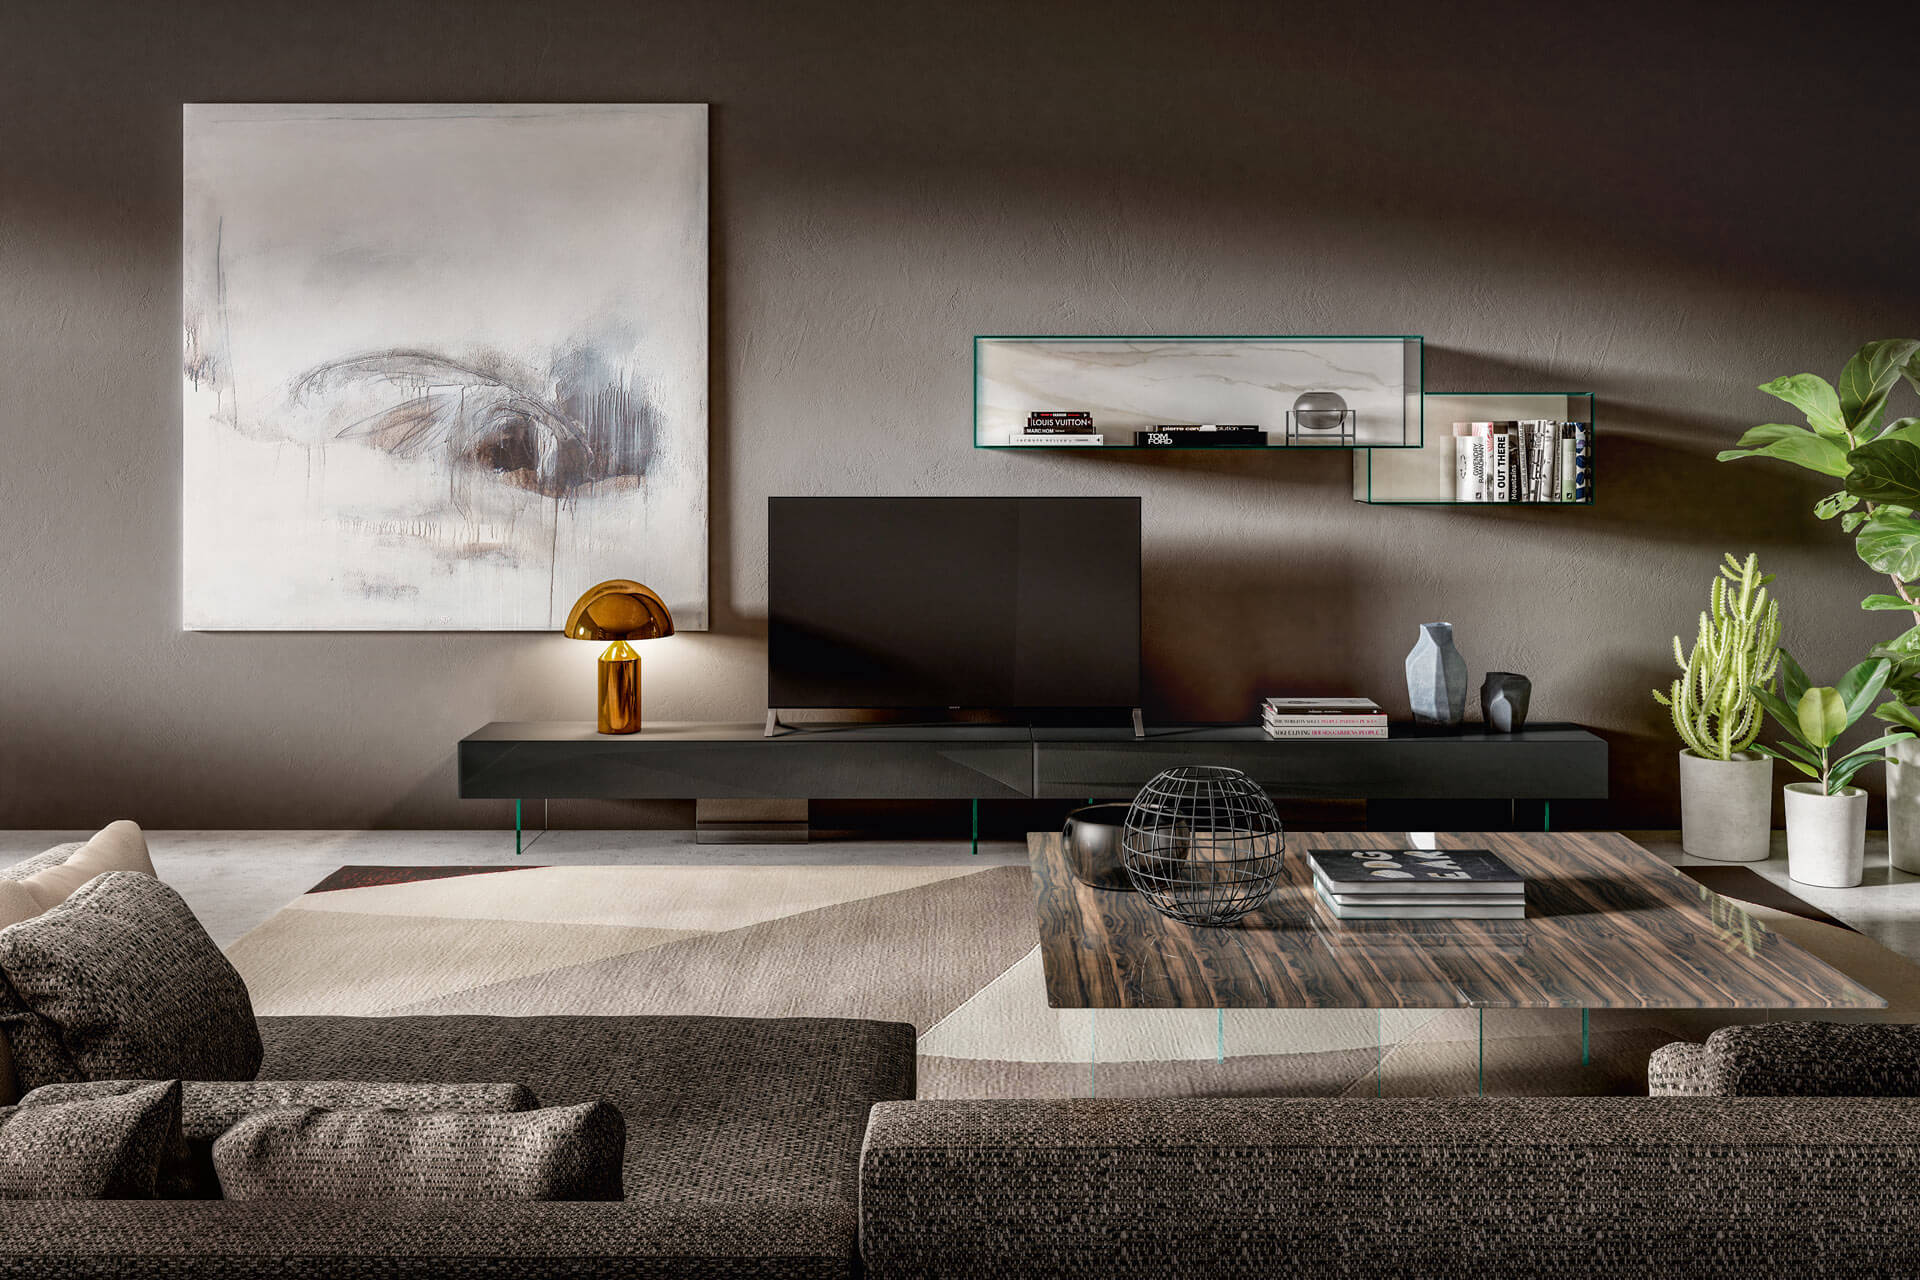 La Credenza Ltd Uk : Discover lago design furniture to decorate your home